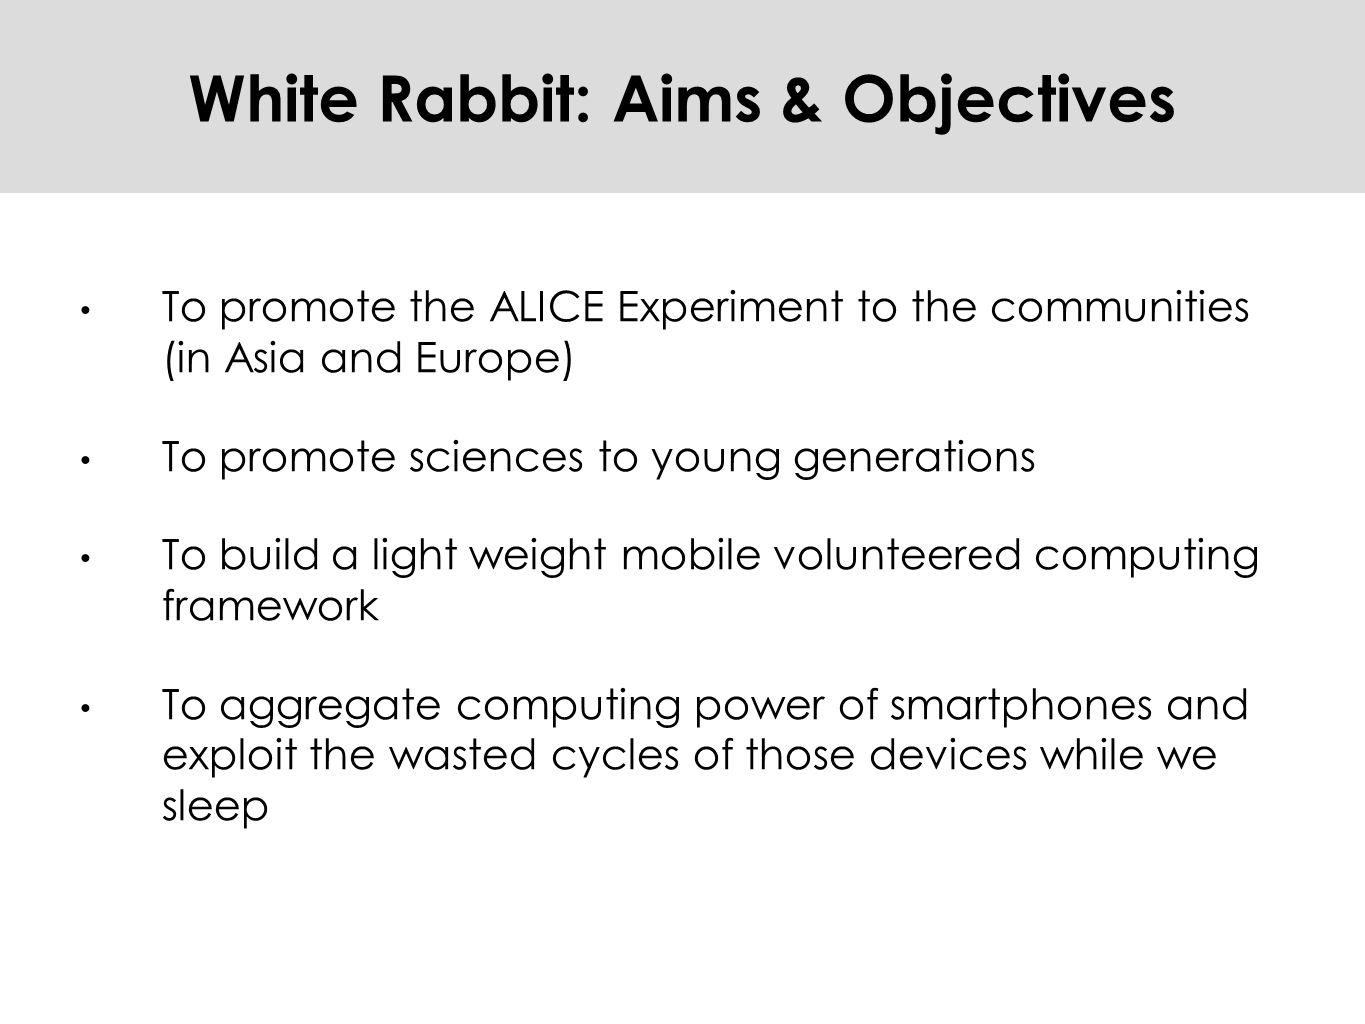 White Rabbit: Aims & Objectives To promote the ALICE Experiment to the communities (in Asia and Europe) To promote sciences to young generations To build a light weight mobile volunteered computing framework To aggregate computing power of smartphones and exploit the wasted cycles of those devices while we sleep